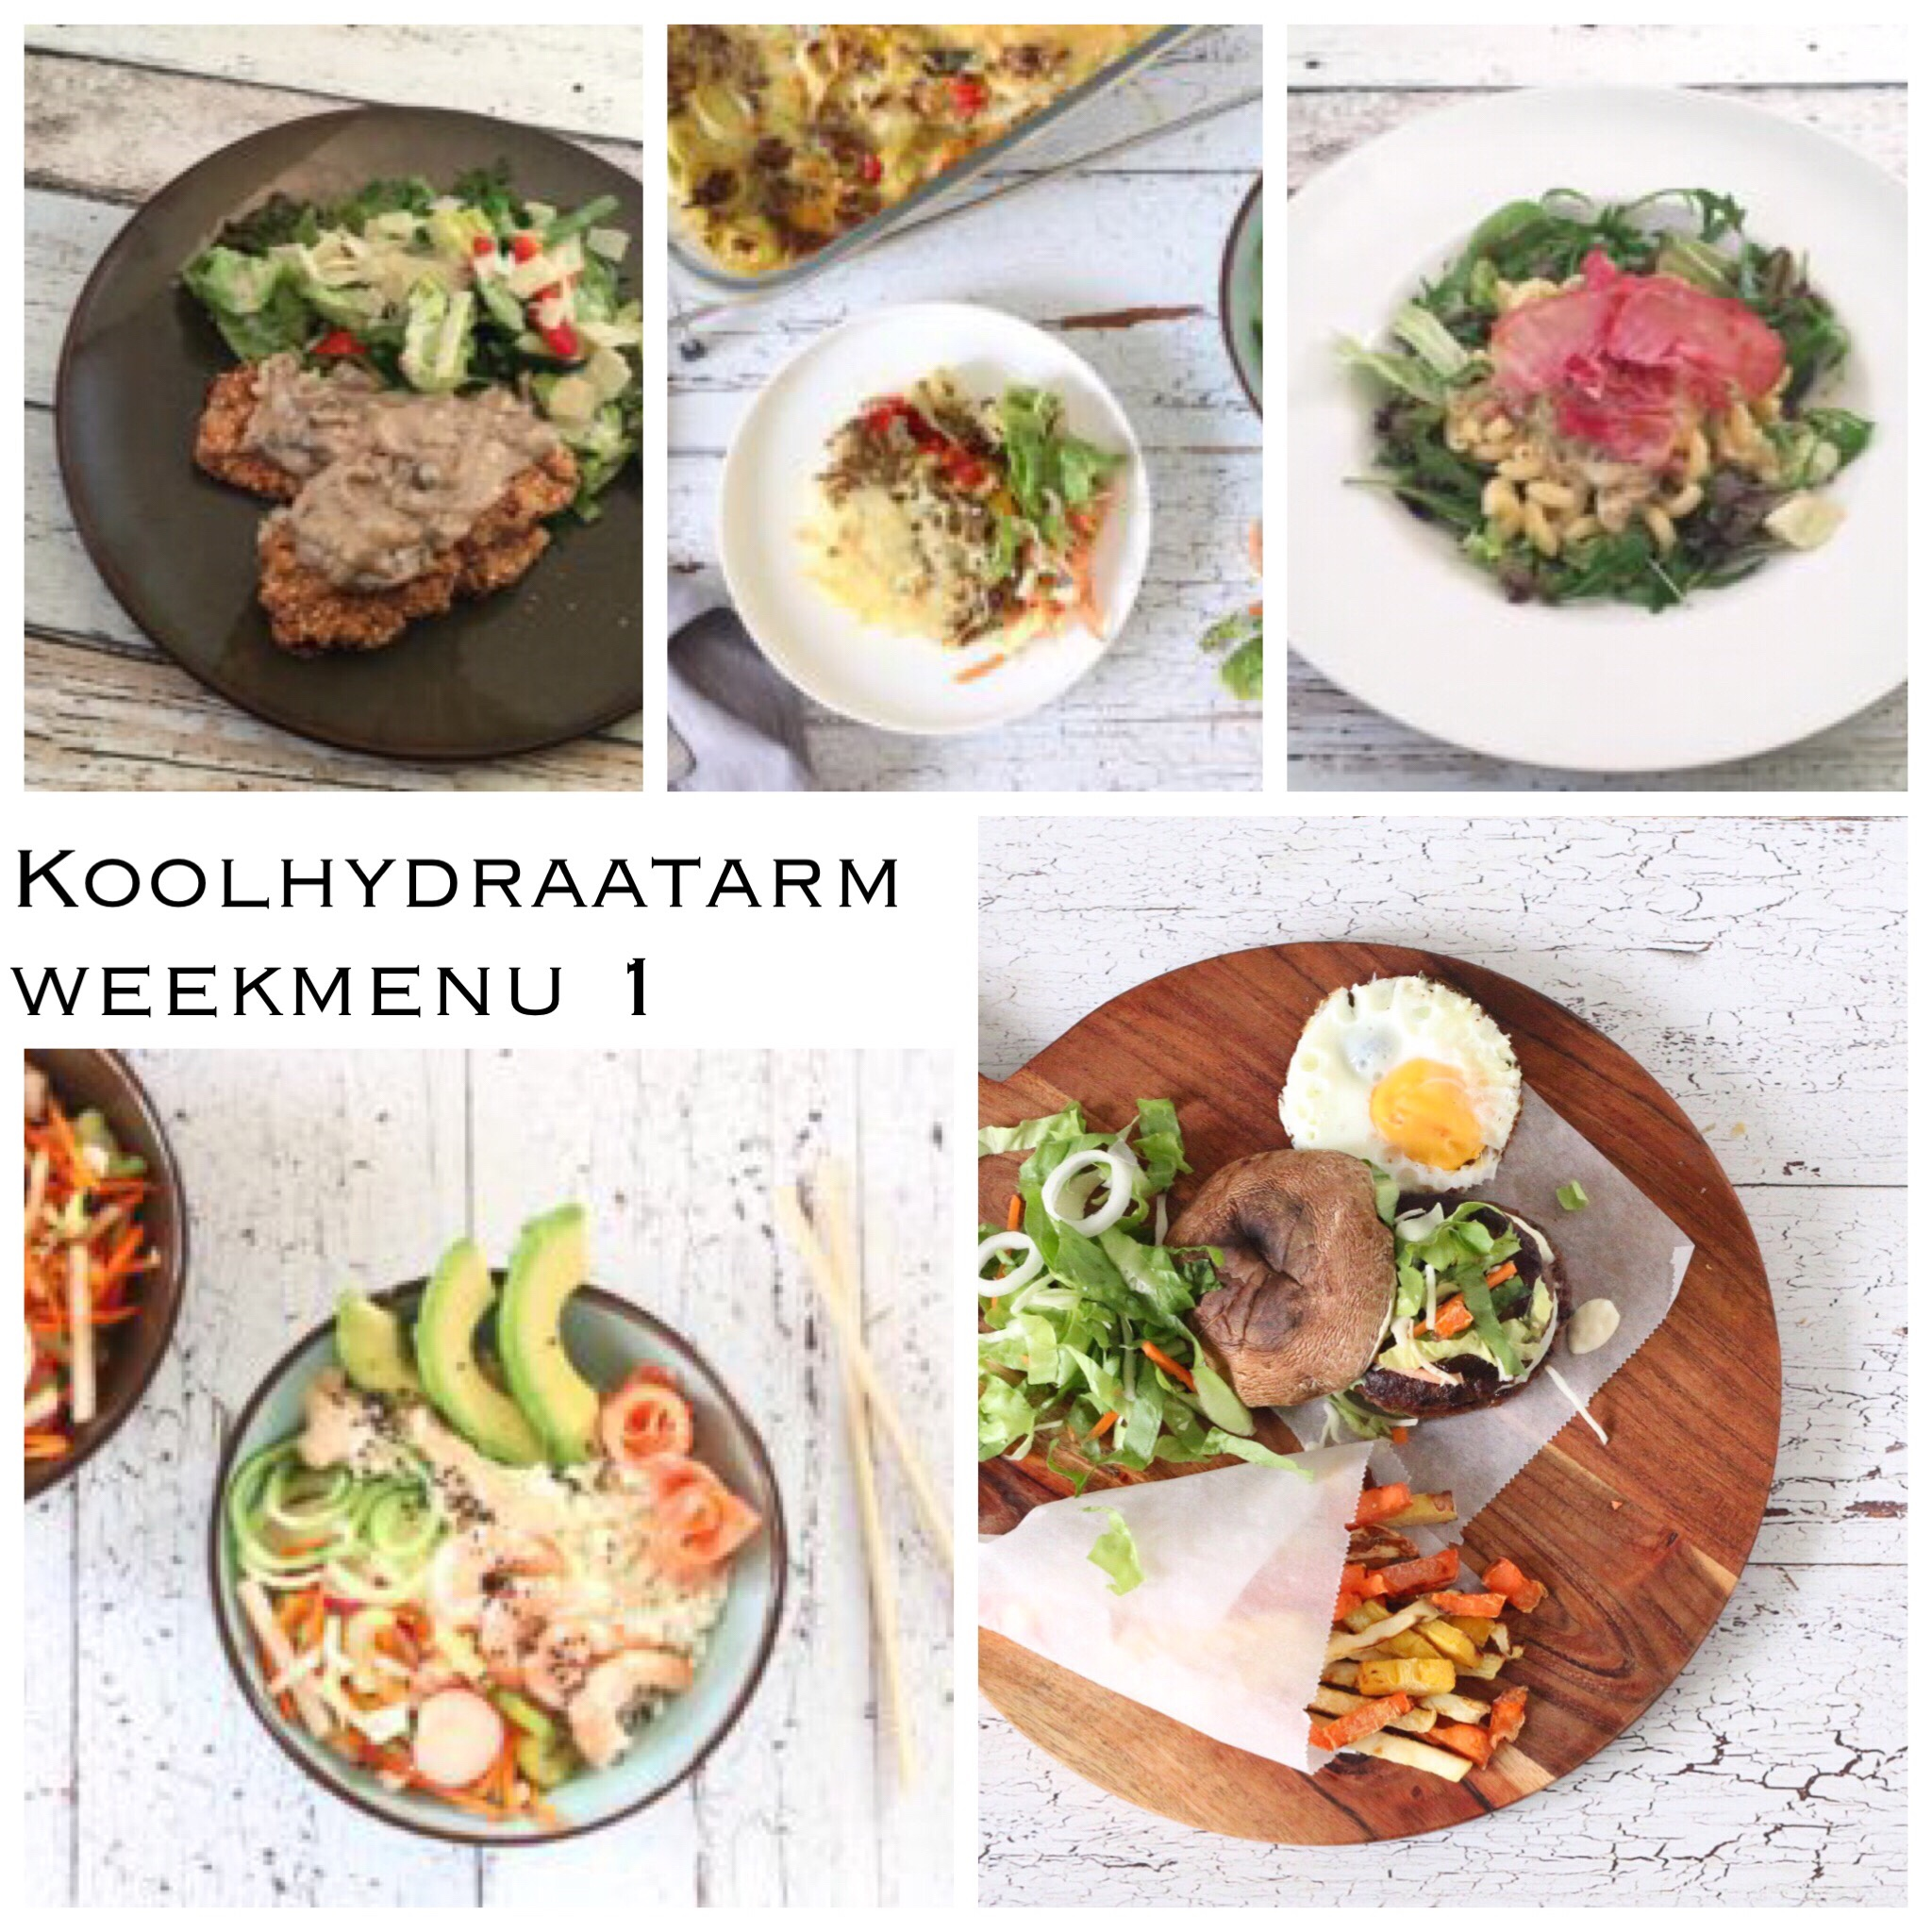 Koolhydraatarm weekmenu 1